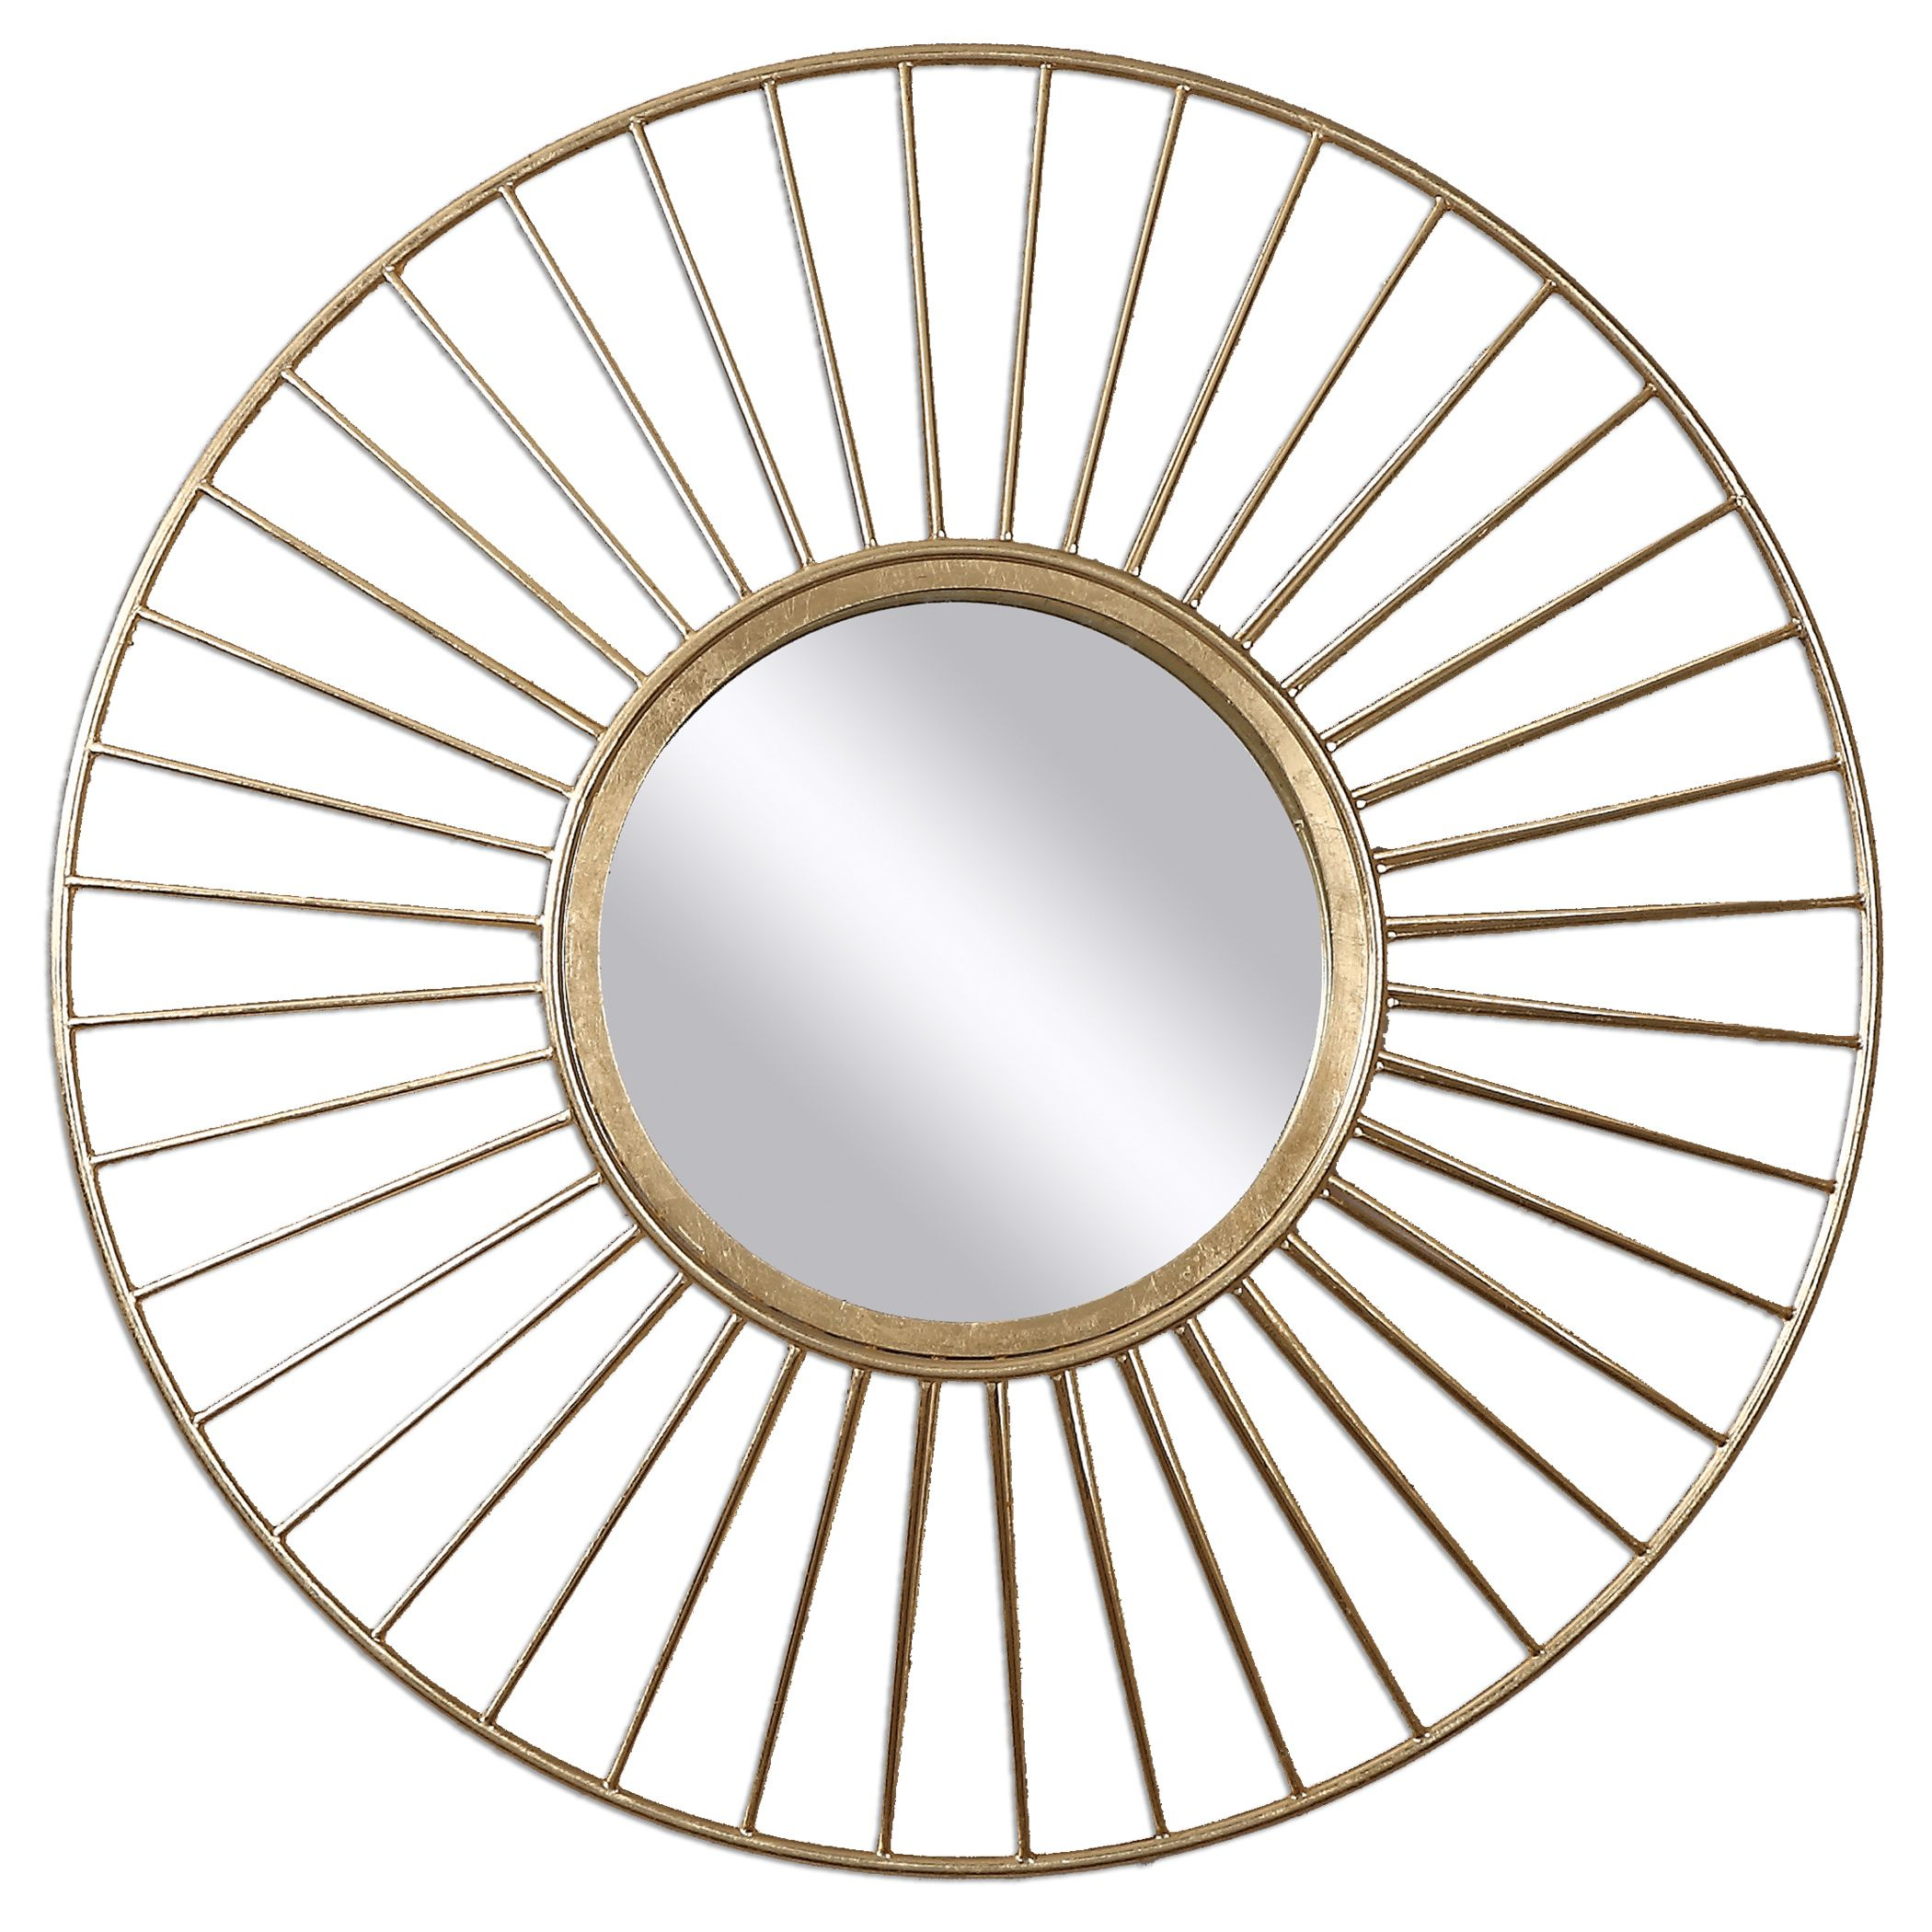 Home Decor: Classy Uttermost Mirror For Home Decor Regarding Sun Shaped Wall Mirrors (Image 9 of 20)